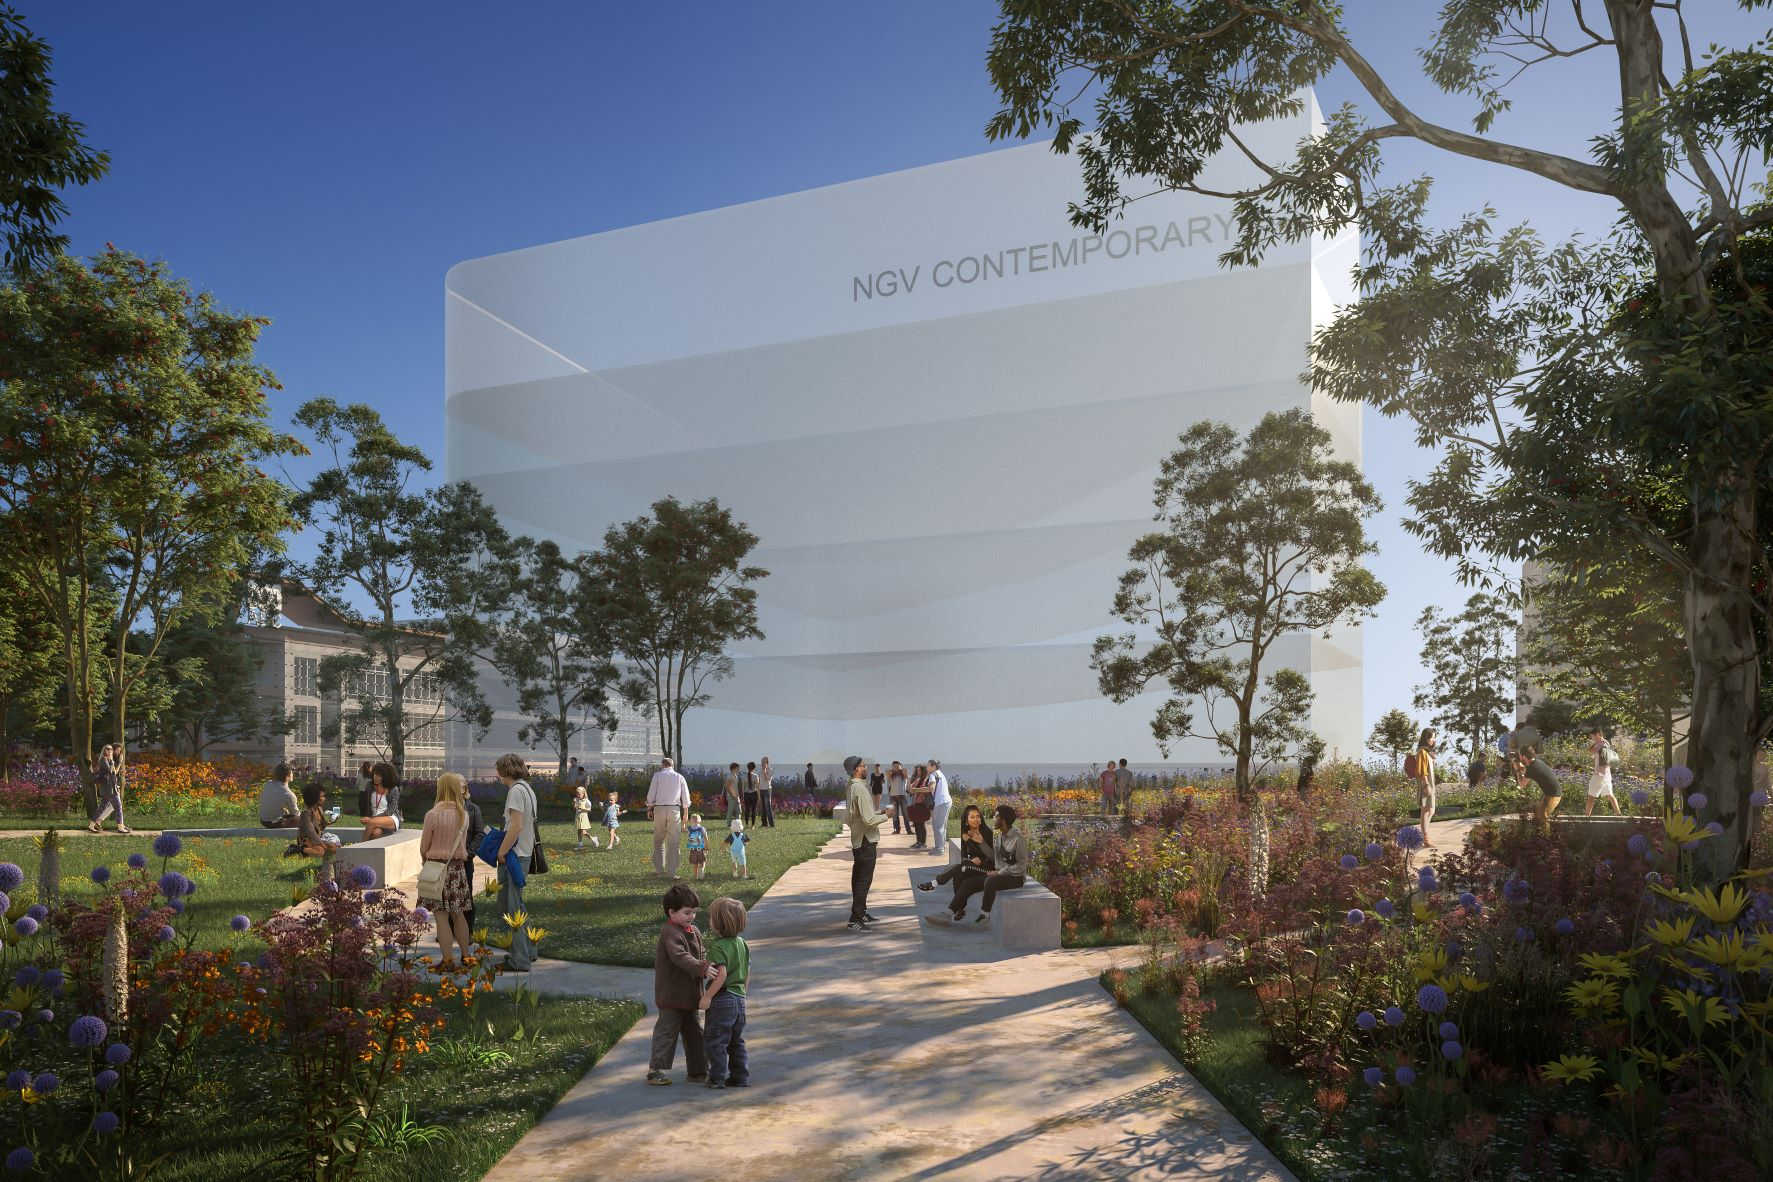 An artist impression of the NGV Contemporary building in white with trees and people around it